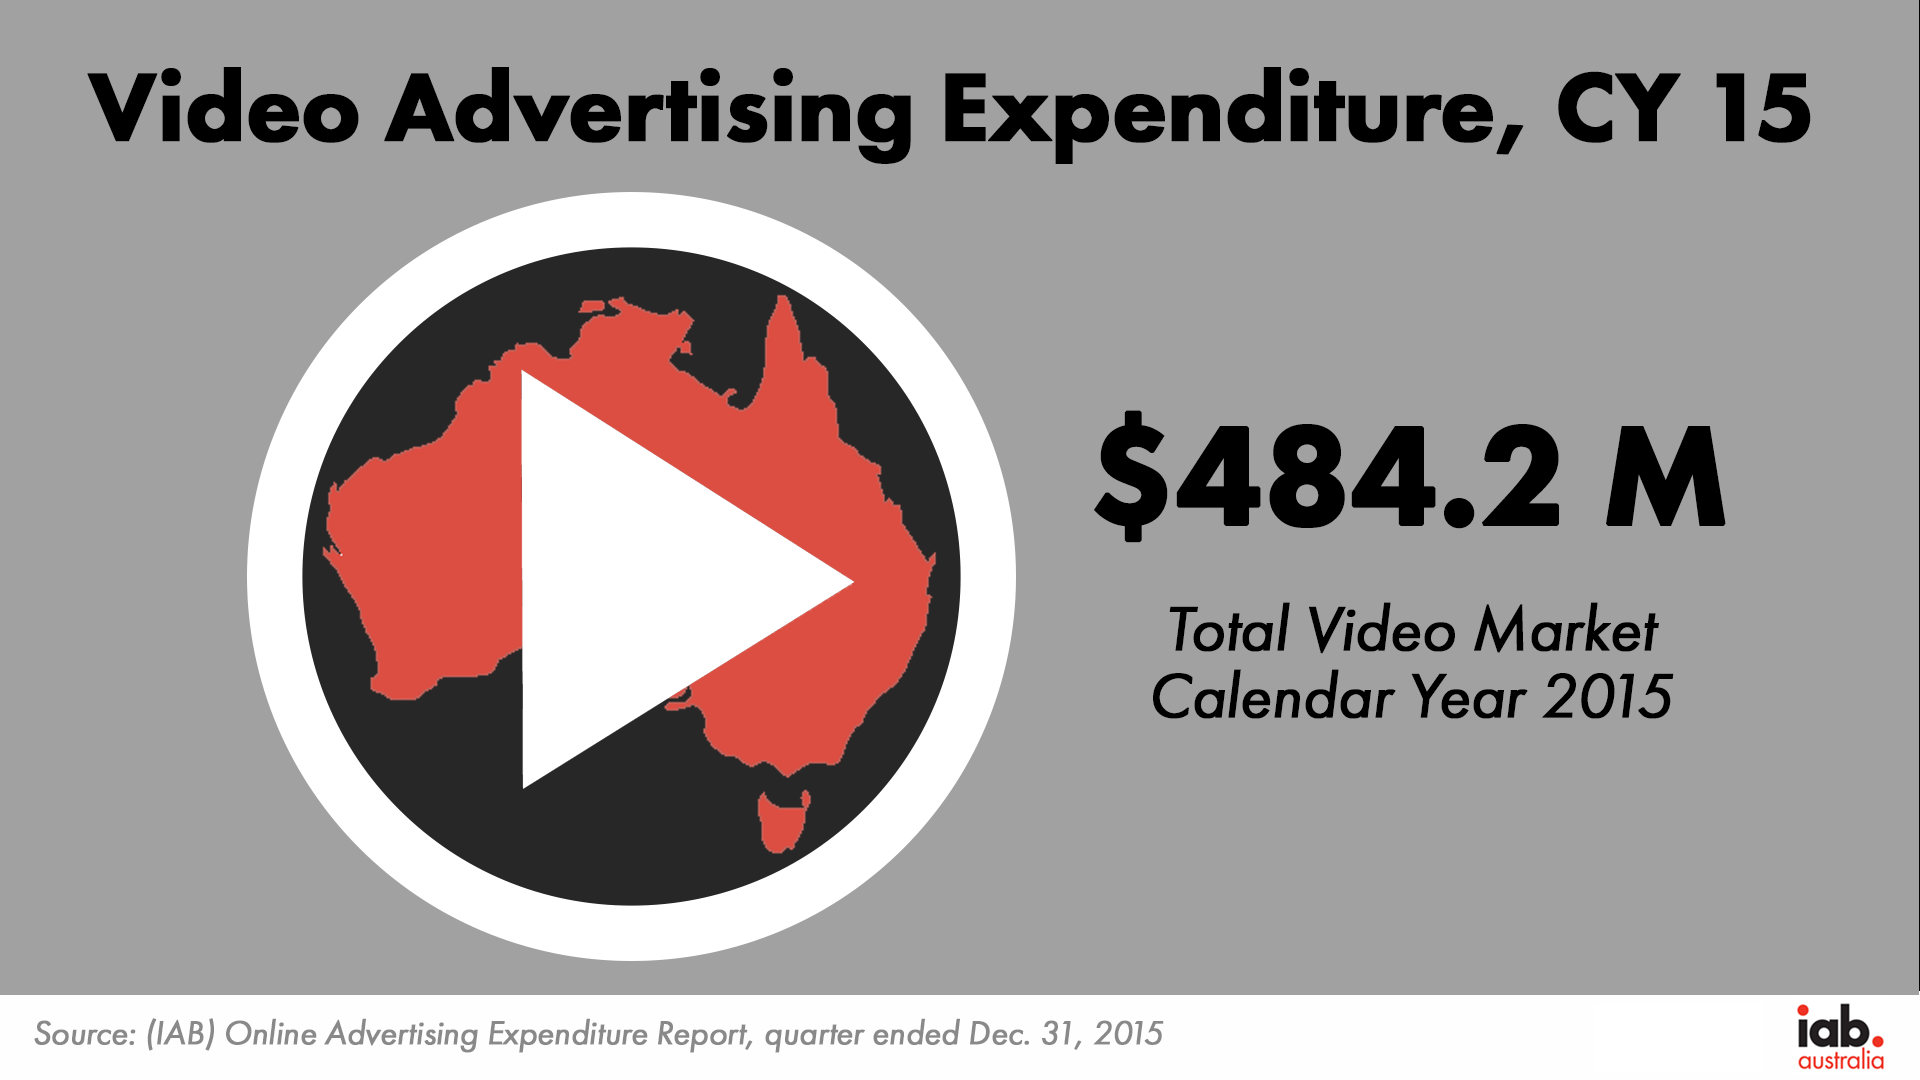 Video Spend CY15